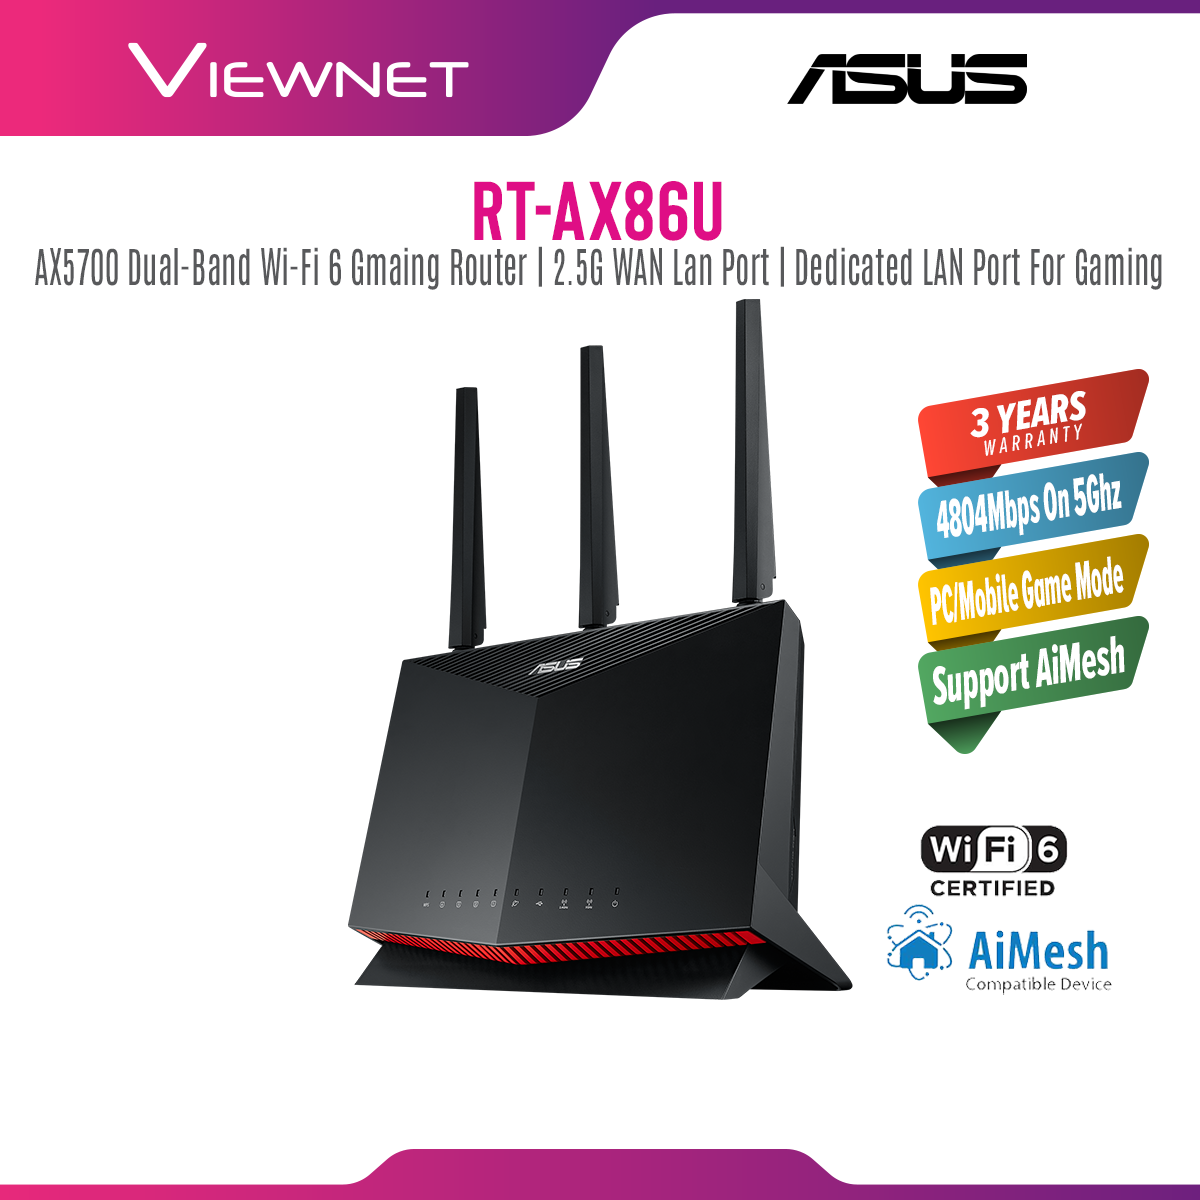 ASUS RT-AX86U/RT-AX86S AX5700 Dual Band WiFi 6 Gaming Router with AiMesh Support, Parental Control, Lifetime free Internet Security USB3.2 Gen 1 Port